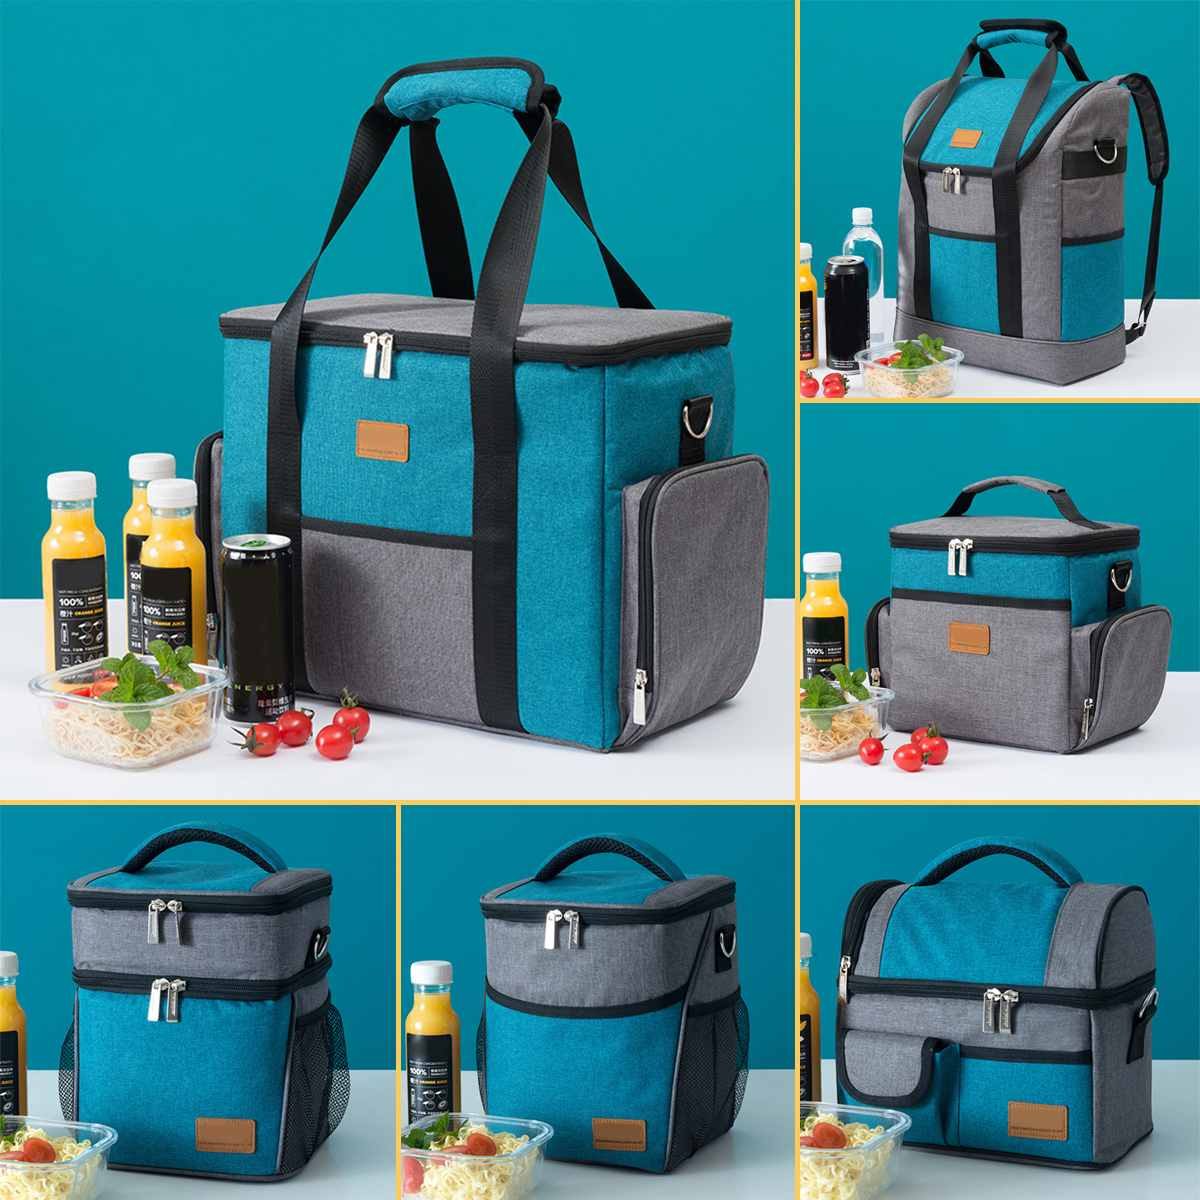 6 Size Oxford Fabric Oxford Lunch Bag Women Kids Outdoor Insulated Cooler Box Thermal Food Picnic Bento Tote Case Accessories